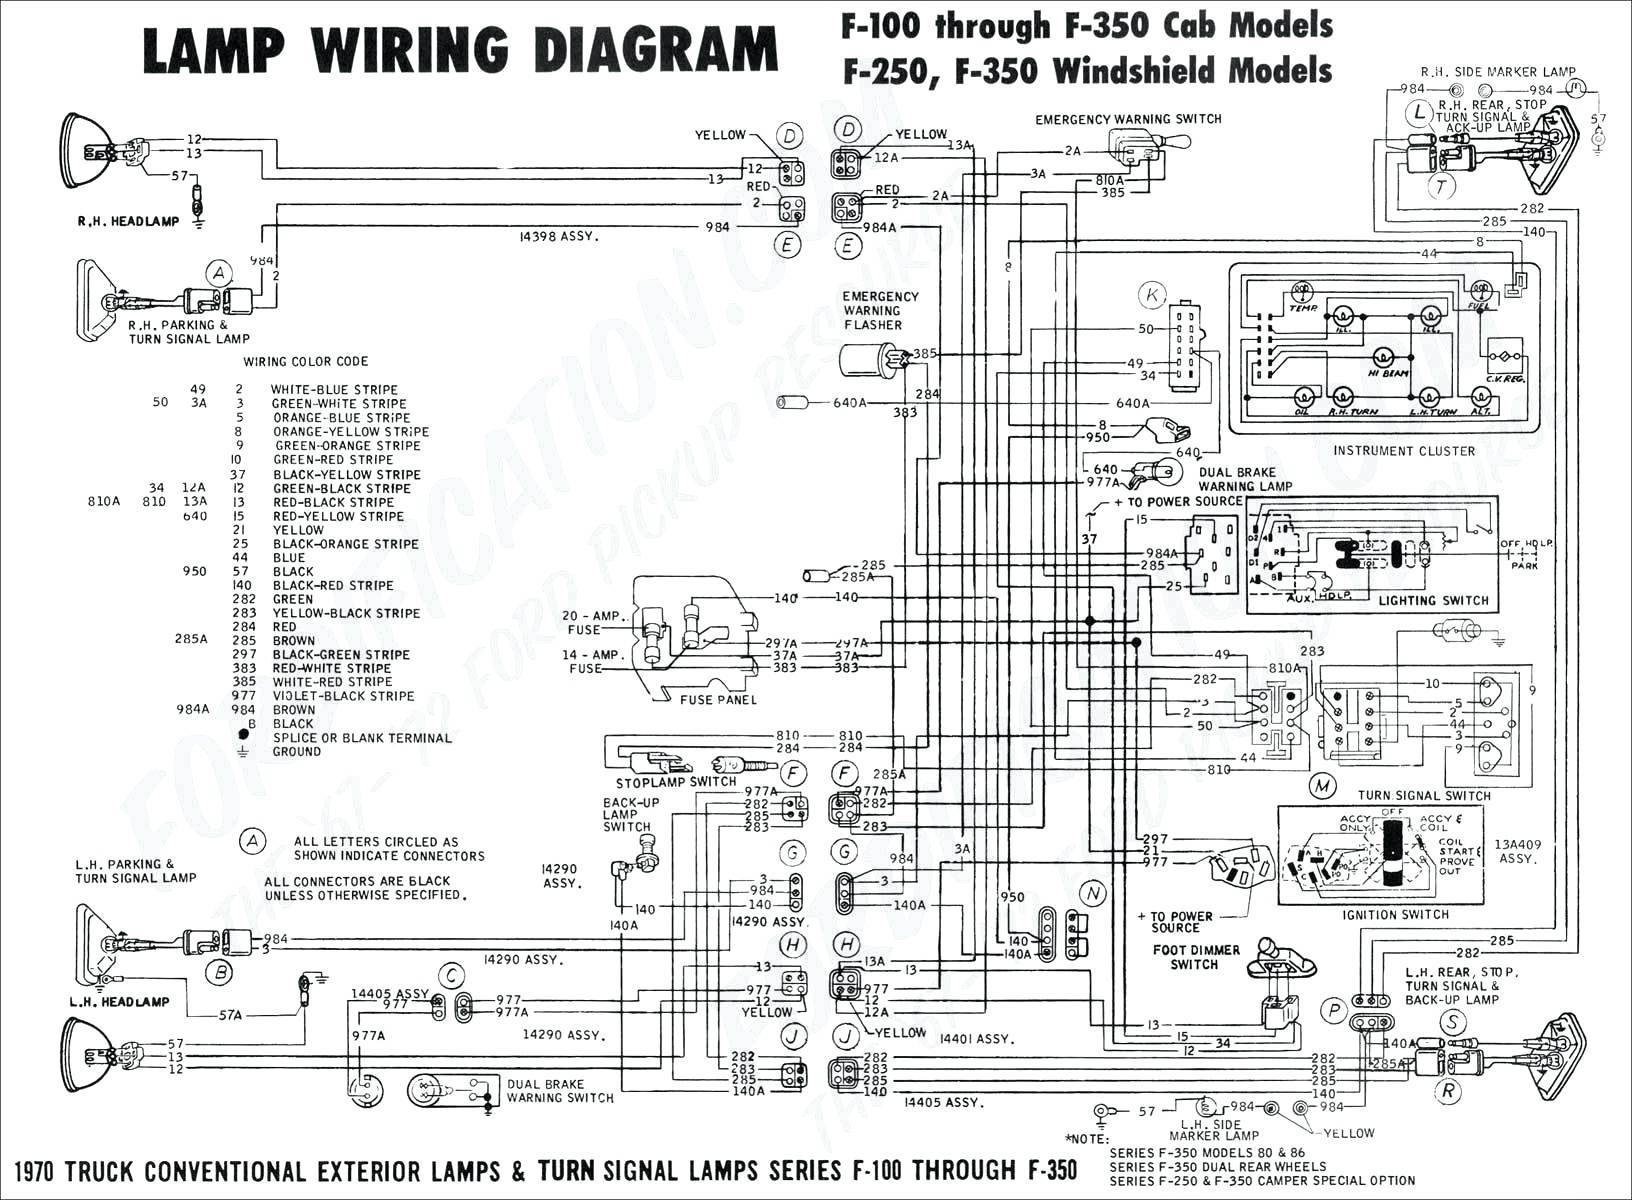 hight resolution of 2009 hhr fuse box diagram wiring diagram database diagram also 2007 kia rondo lx on 2001 honda civic fuse panel diagram